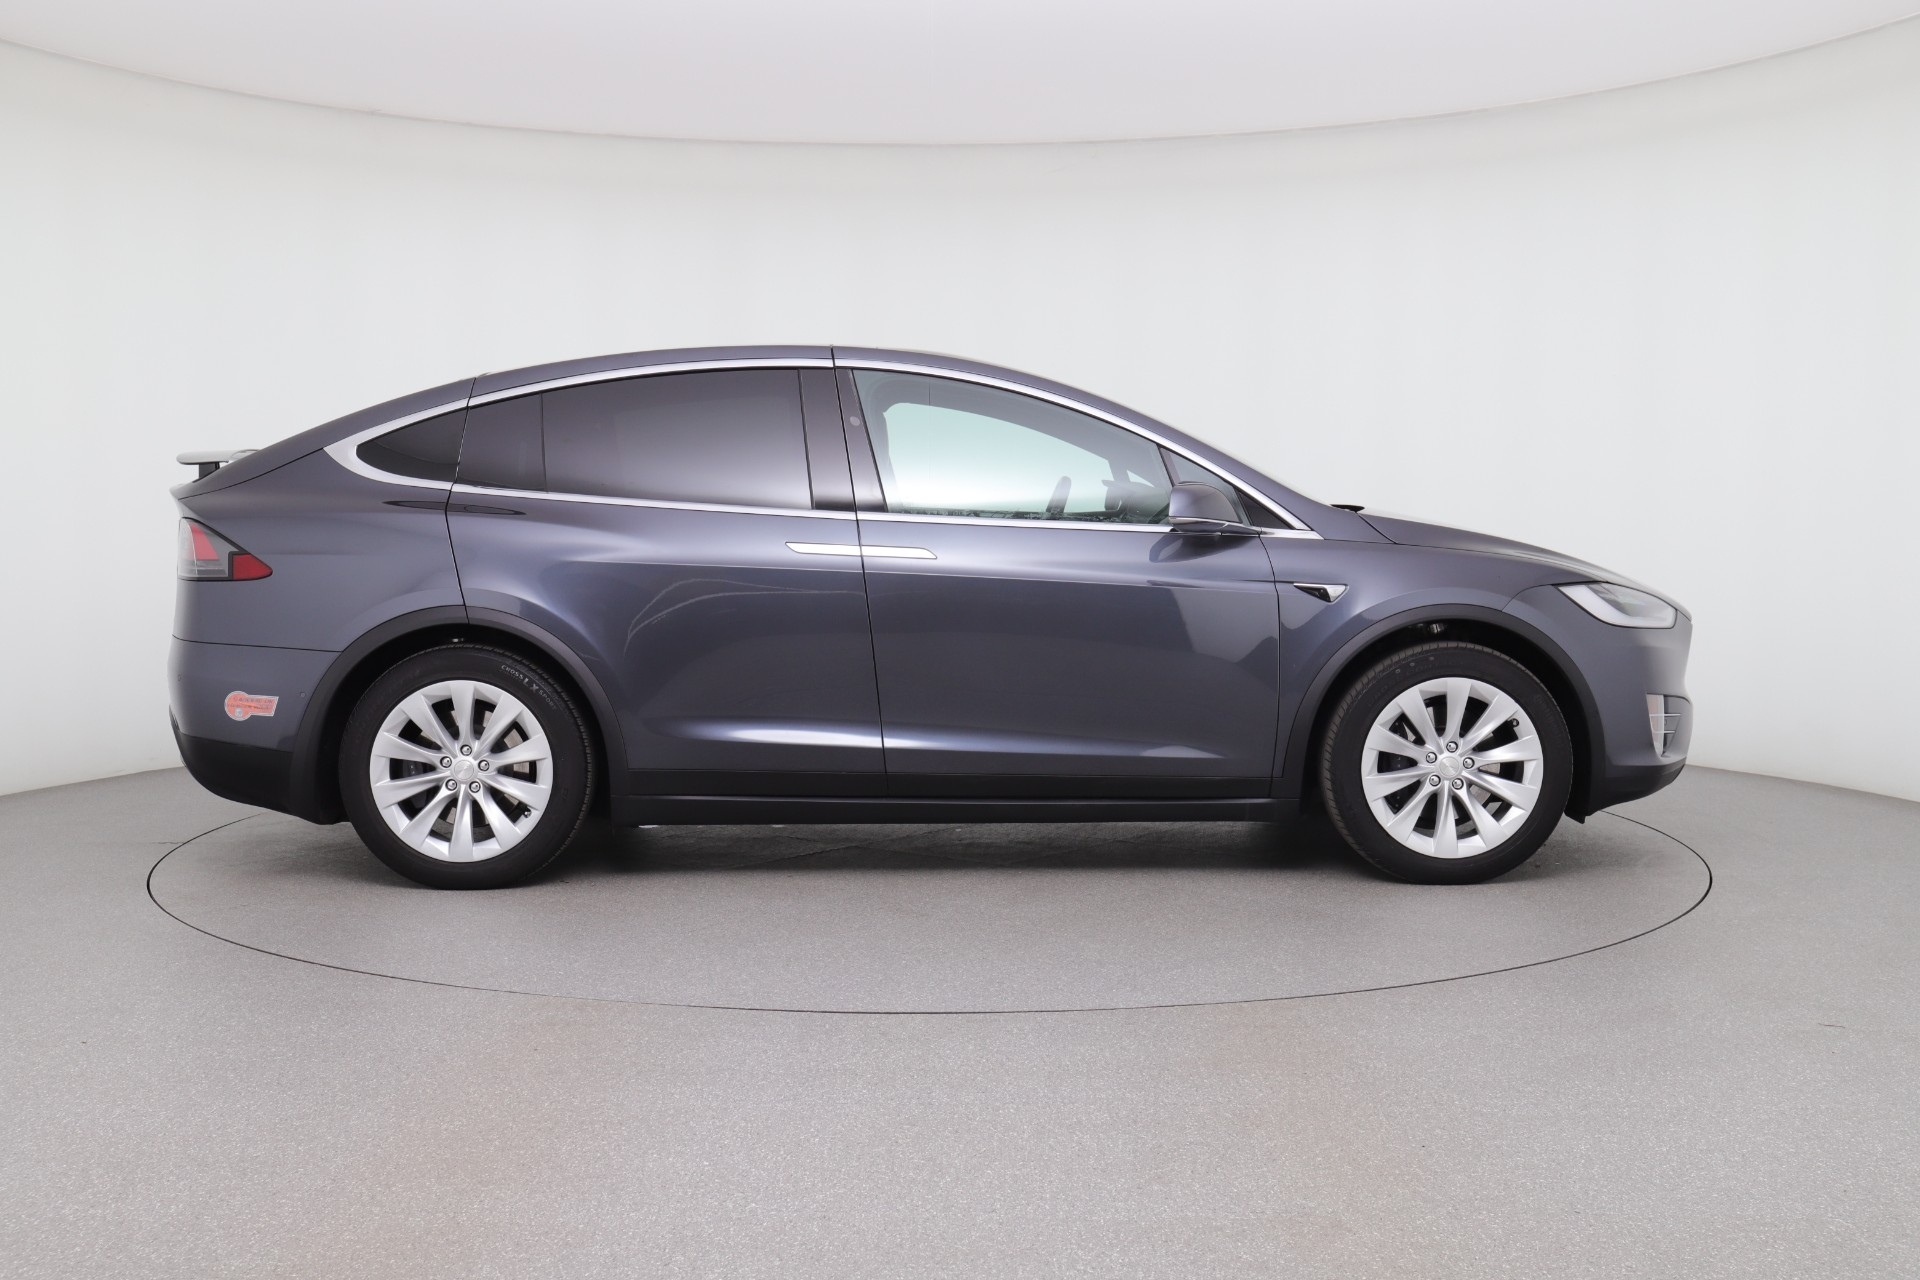 How Much is a Used Tesla Model X